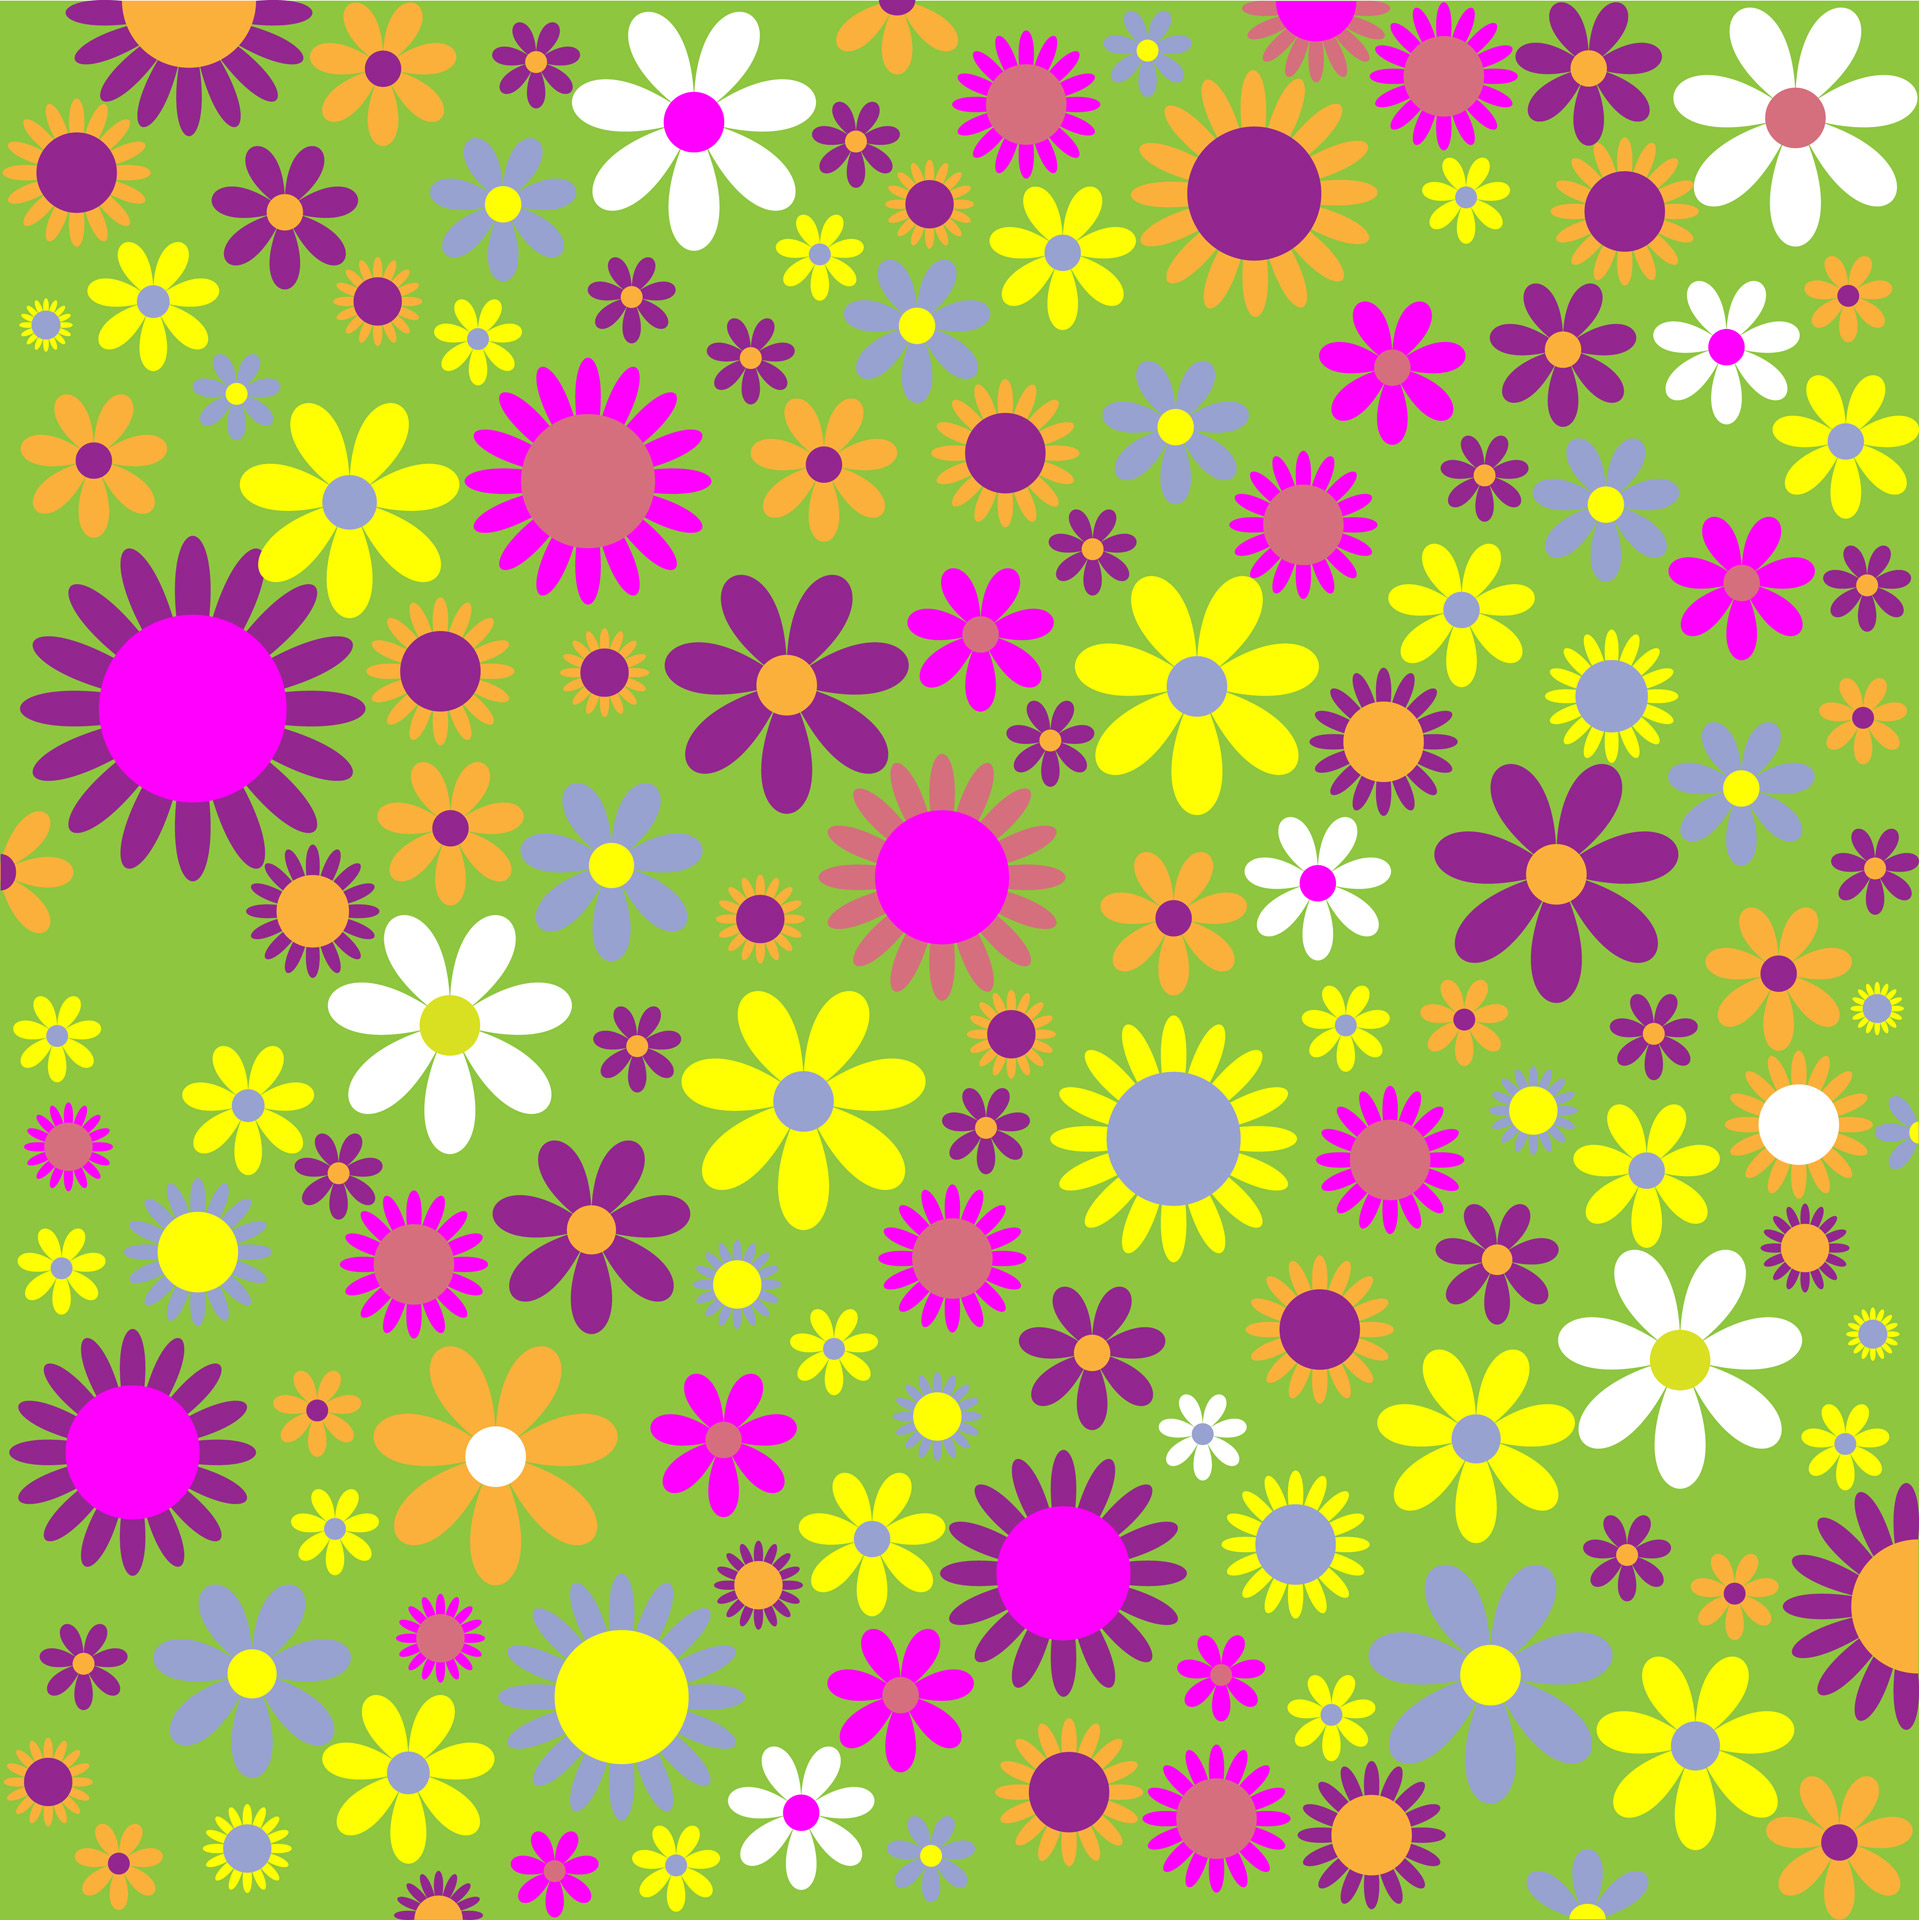 Floral Flowers Pattern Colorful Free Stock Photo.